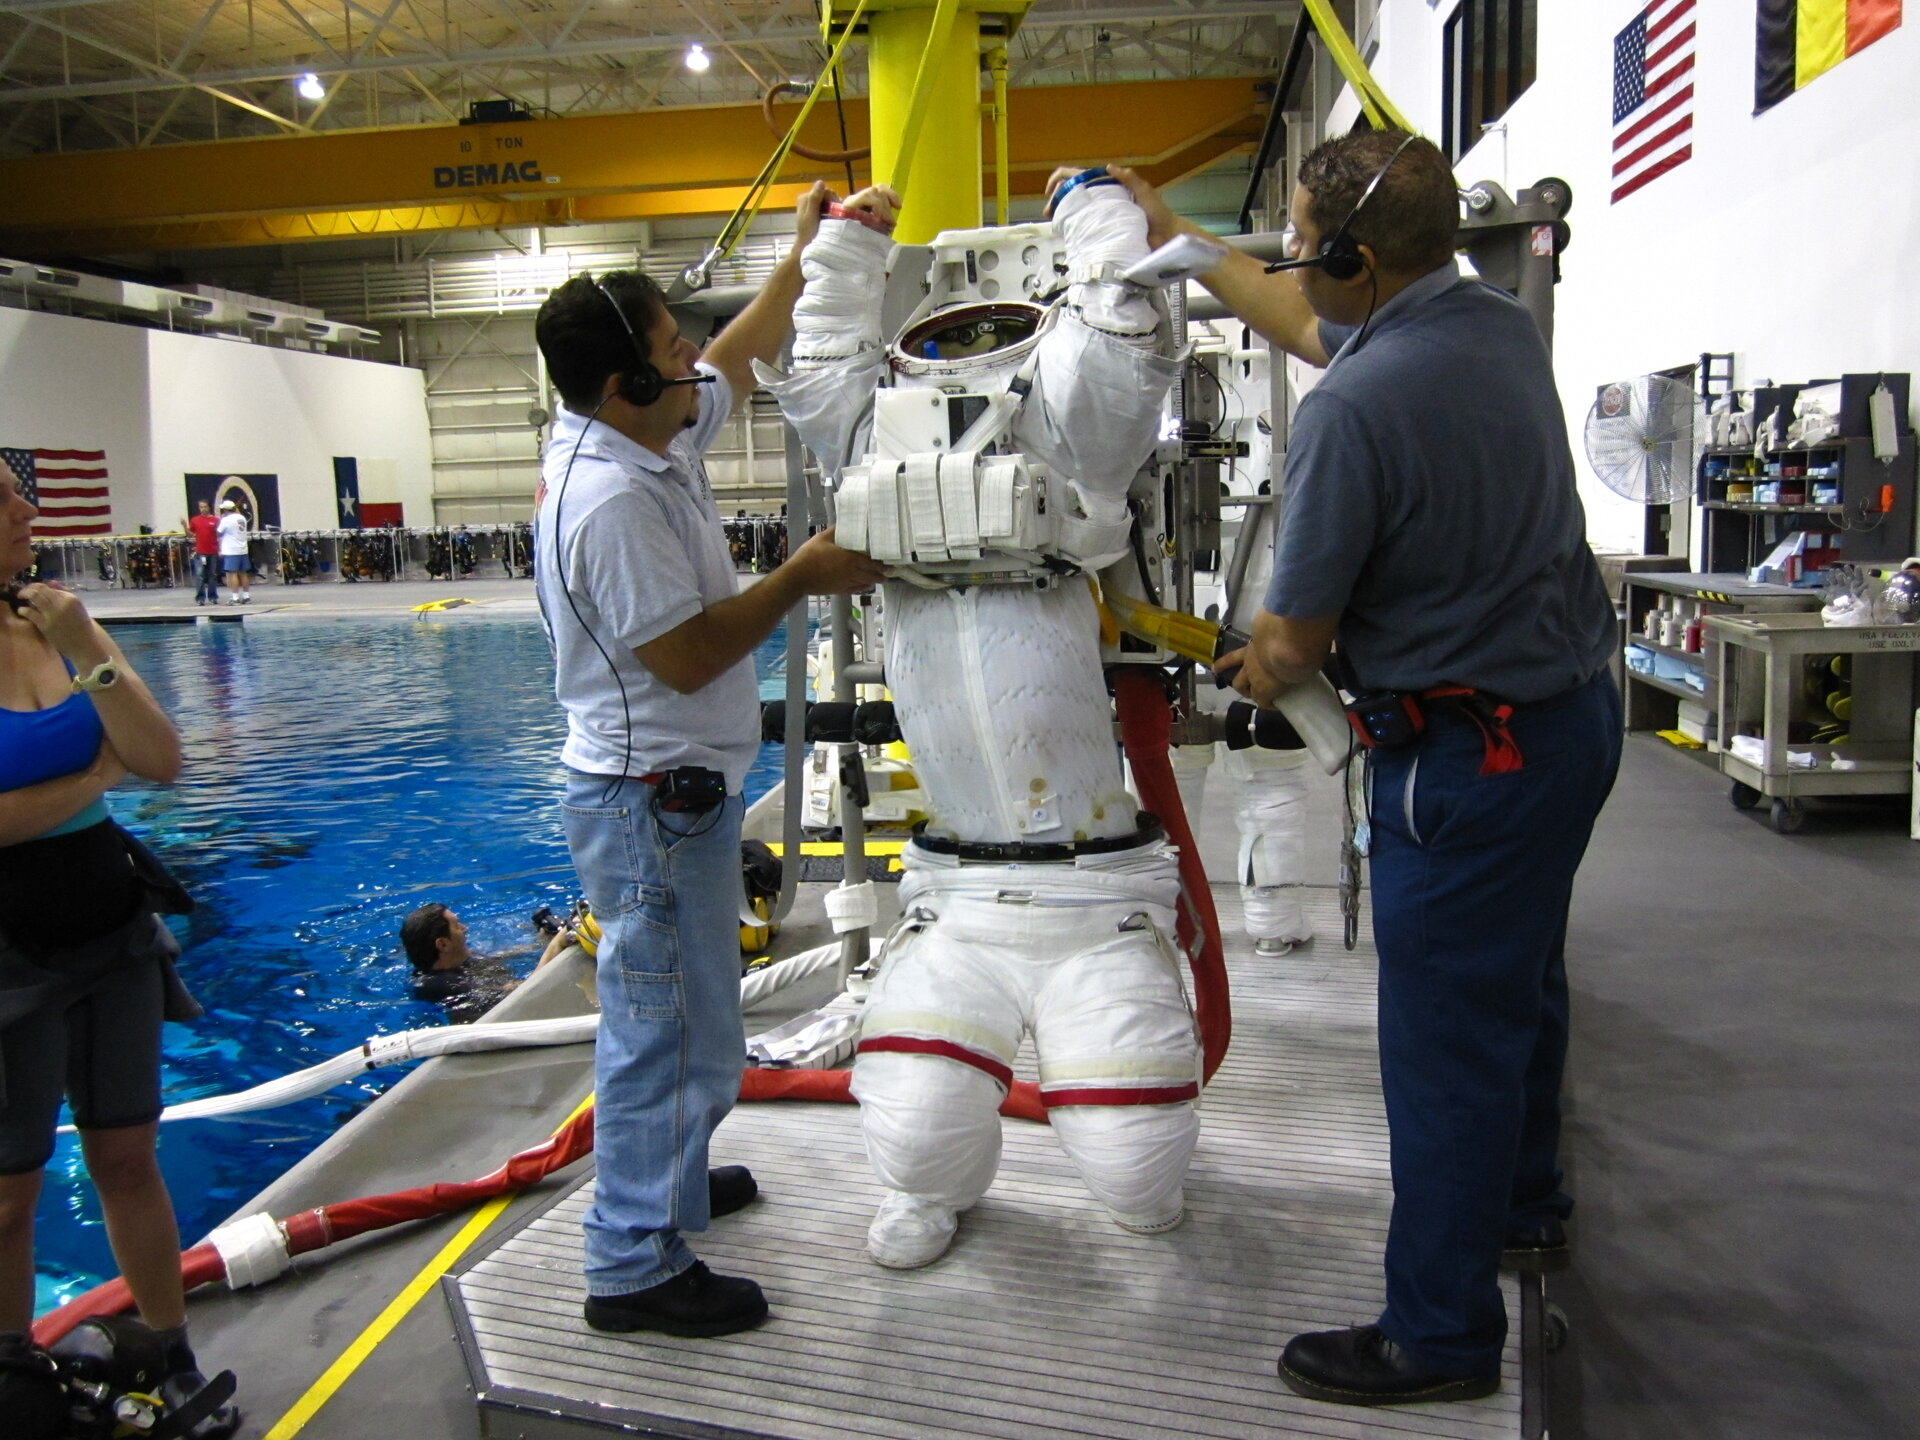 Alexander Gerst suited up for spacewalk training